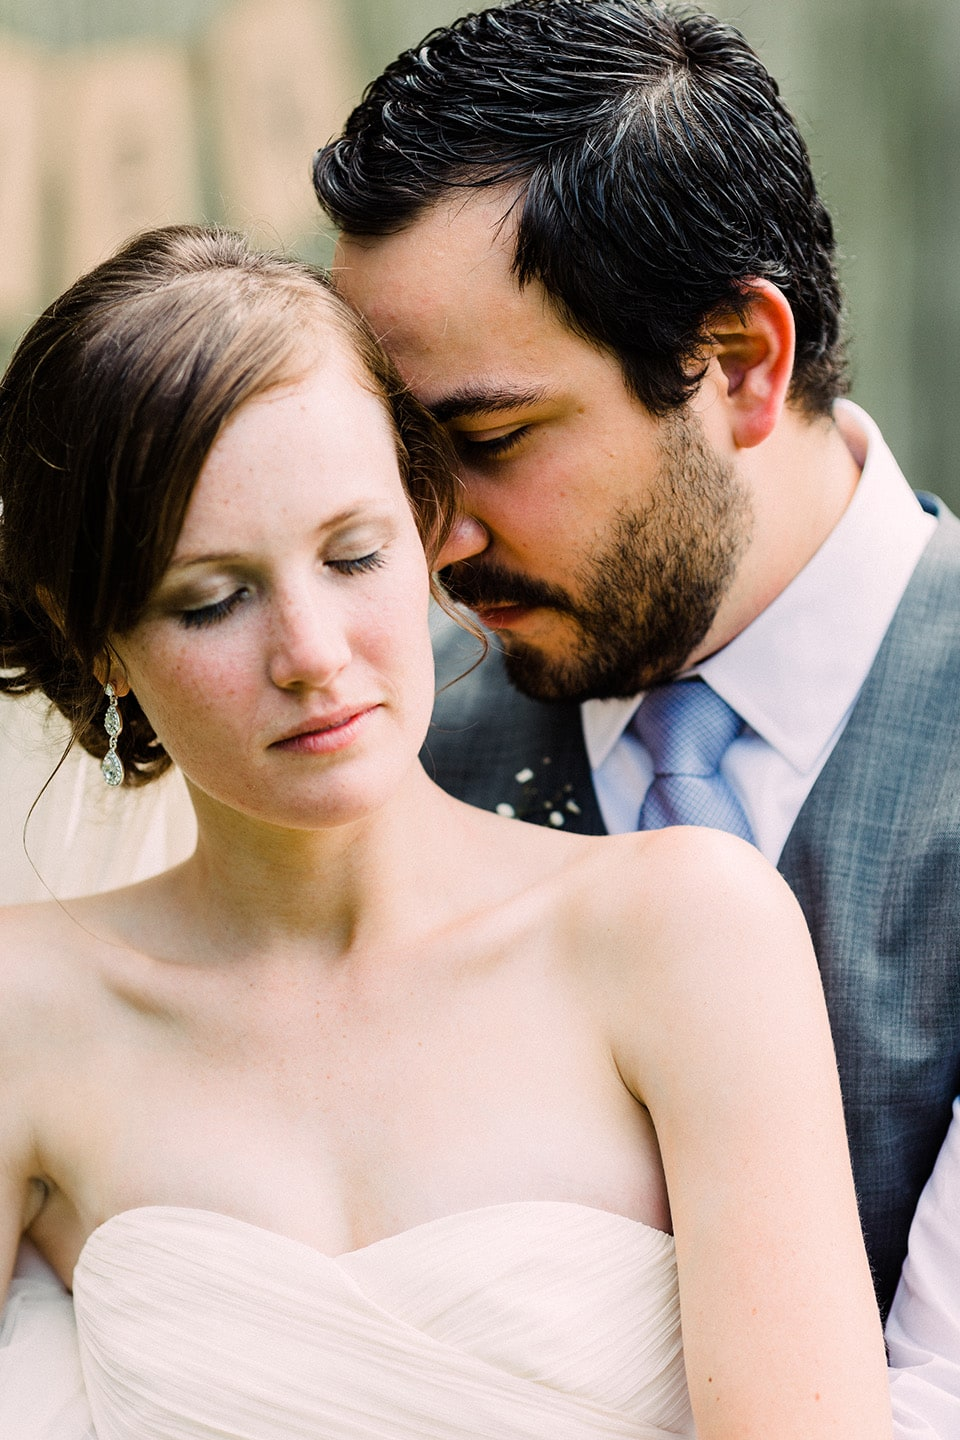 Bride and groom touch foreheads with their eyes closed